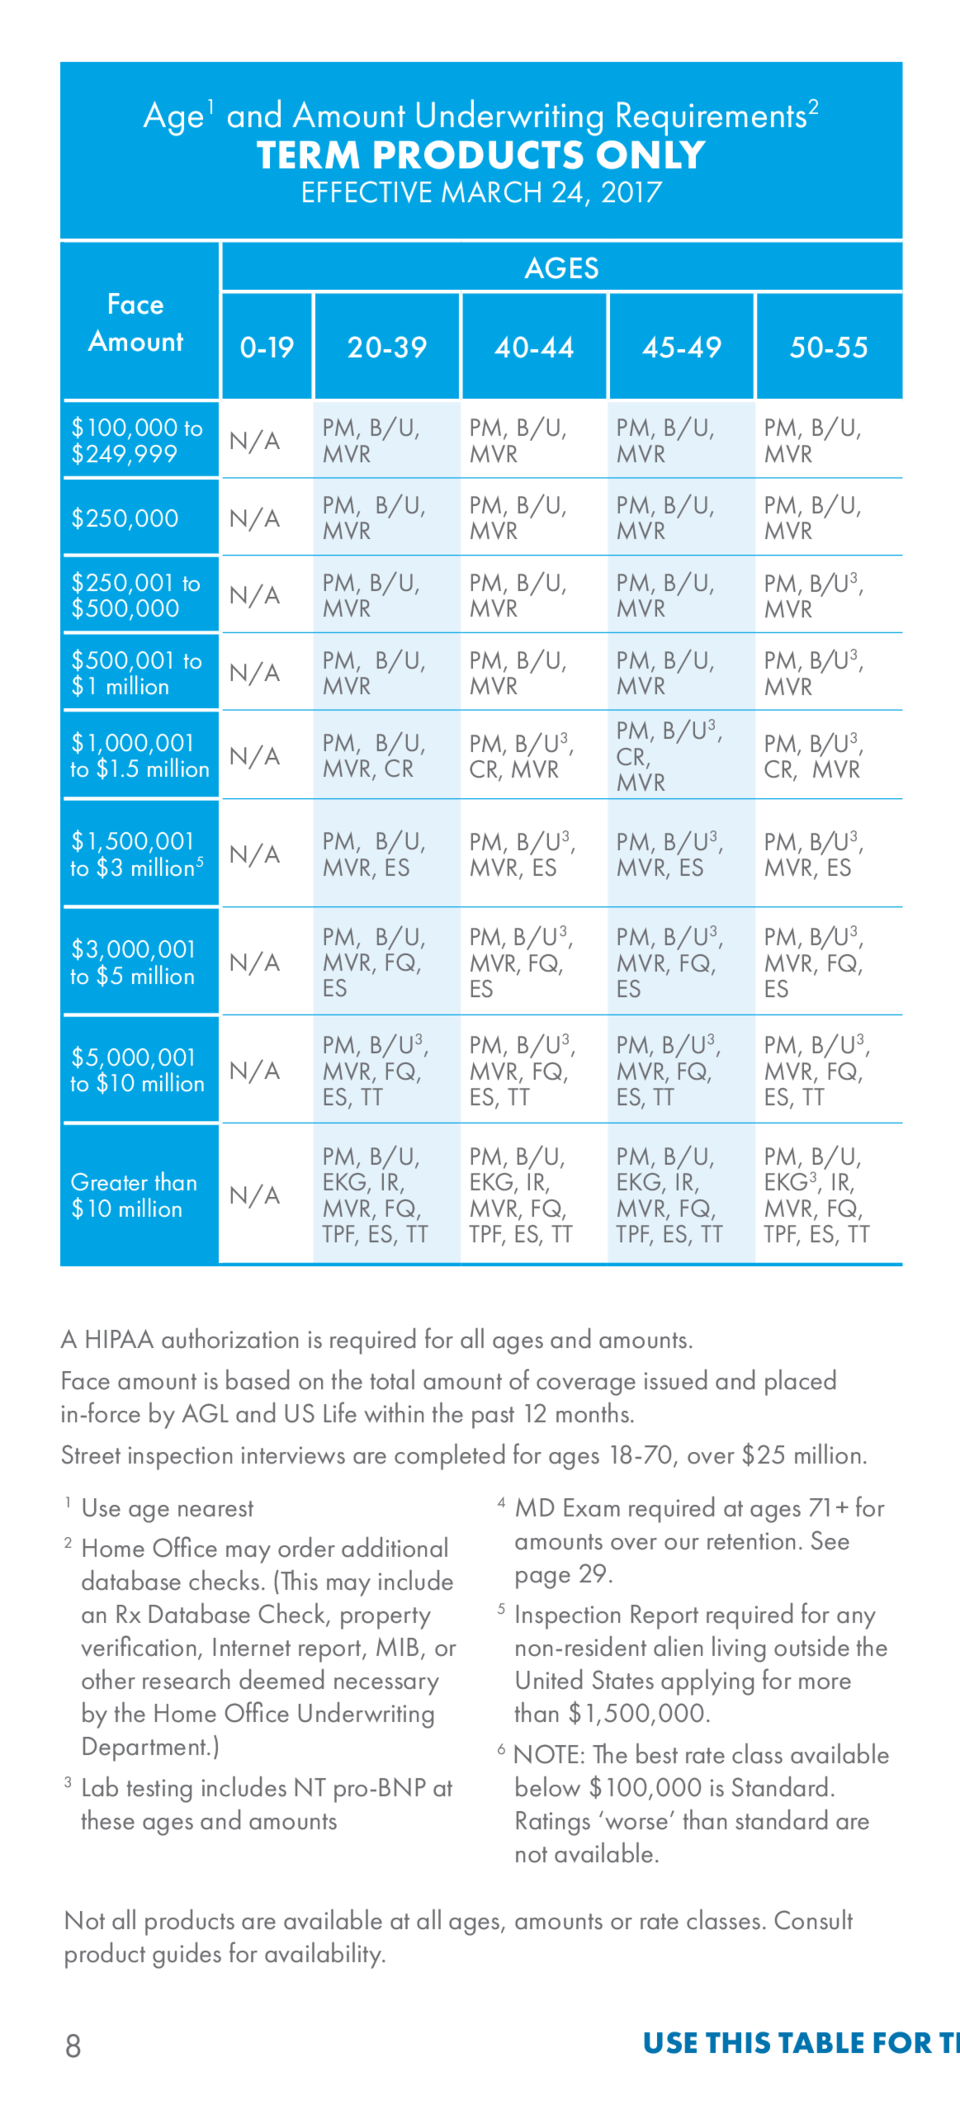 Aig field underwriting guide simplebooklet age1 and amount underwriting requirements2 age1 and amount underwriting requirements2 effective march 24 2017 effectiv 1betcityfo Image collections